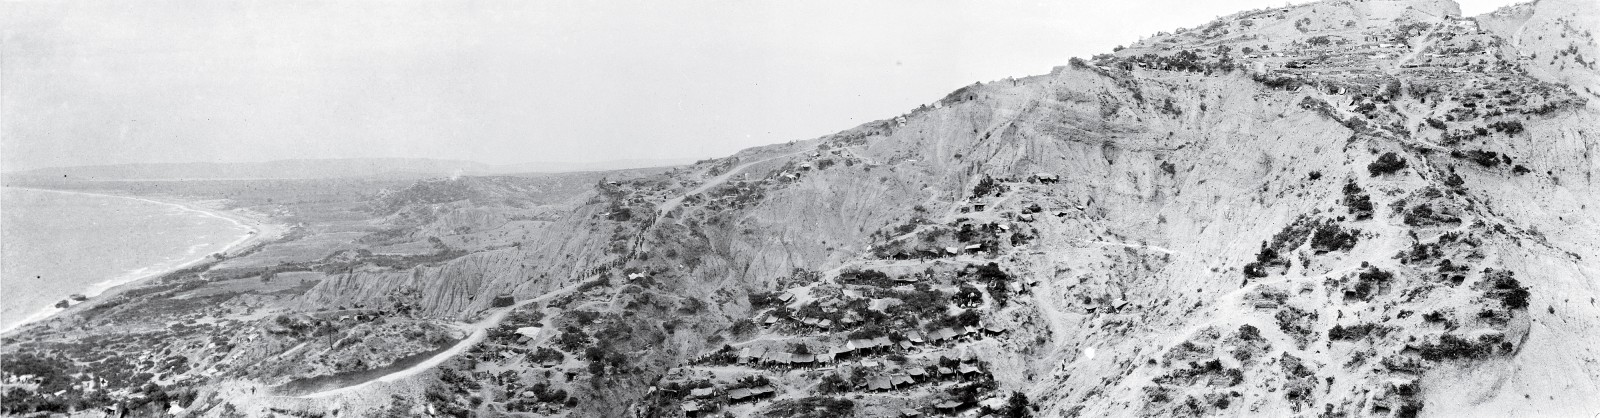 The razorback spur known as Walker's Ridge, on the northern flank of the Anzac line, provided access to the top of First Ridge close to The Nek. Through Herculean efforts with pick and shovel, notably by Colonel Malone's Wellington Battalion, a foot road was constructed up its steep slope, and its deeply eroded sides were terraced to make room for dug-outs.